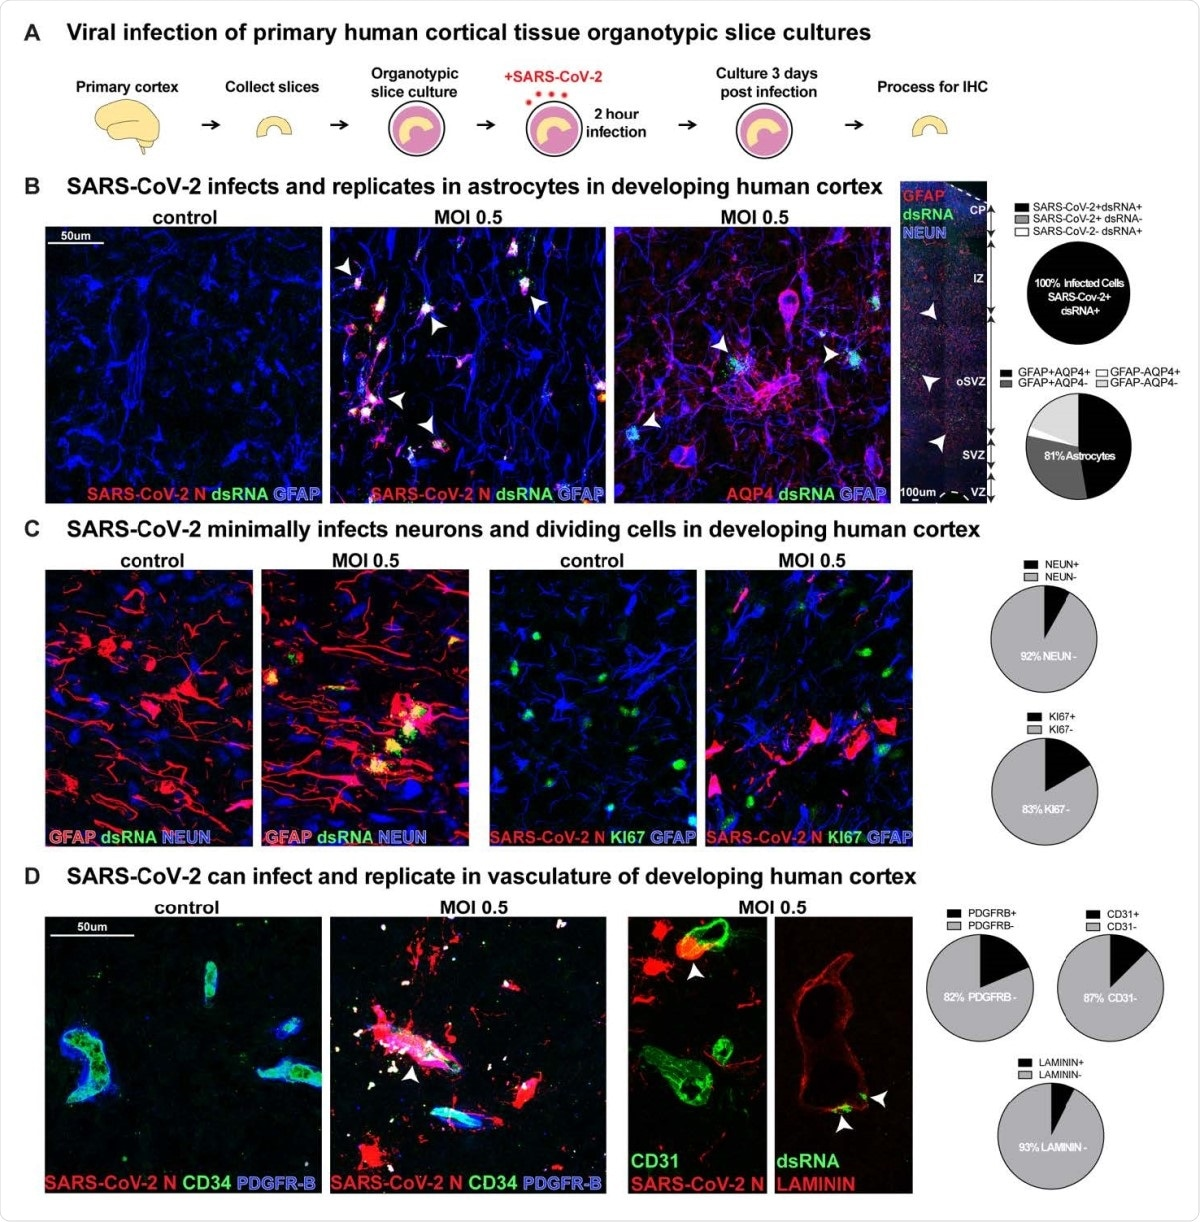 SARS-CoV-2 Infects Astrocytes in Developing Human Cortex. A) Experimental paradigm for viral infection of human cortical tissue. Primary cortical tissue was acutely sectioned and cultured at the air-liquid interface. The next day tissue was infected with SARS-CoV-2 at MOI 0.5 and cultured for 72 hours before being collected and processed. B) SARS-CoV-2 infects GFAP+AQP4+ astrocyte cells in the developing human cortex, which are predominantly located in the subventricular zone (SVZ), where />81% of cells assayed expressed markers of astrocytes. 100% of infected cells expressed both SARS-CoV-2+ nucleocapsid (N) antibody and double-stranded (ds)RNA antibody. White arrowheads indicate dsRNA+GFAP+ infected astrocytes (dsRNA+SARS-CoV-2 N+